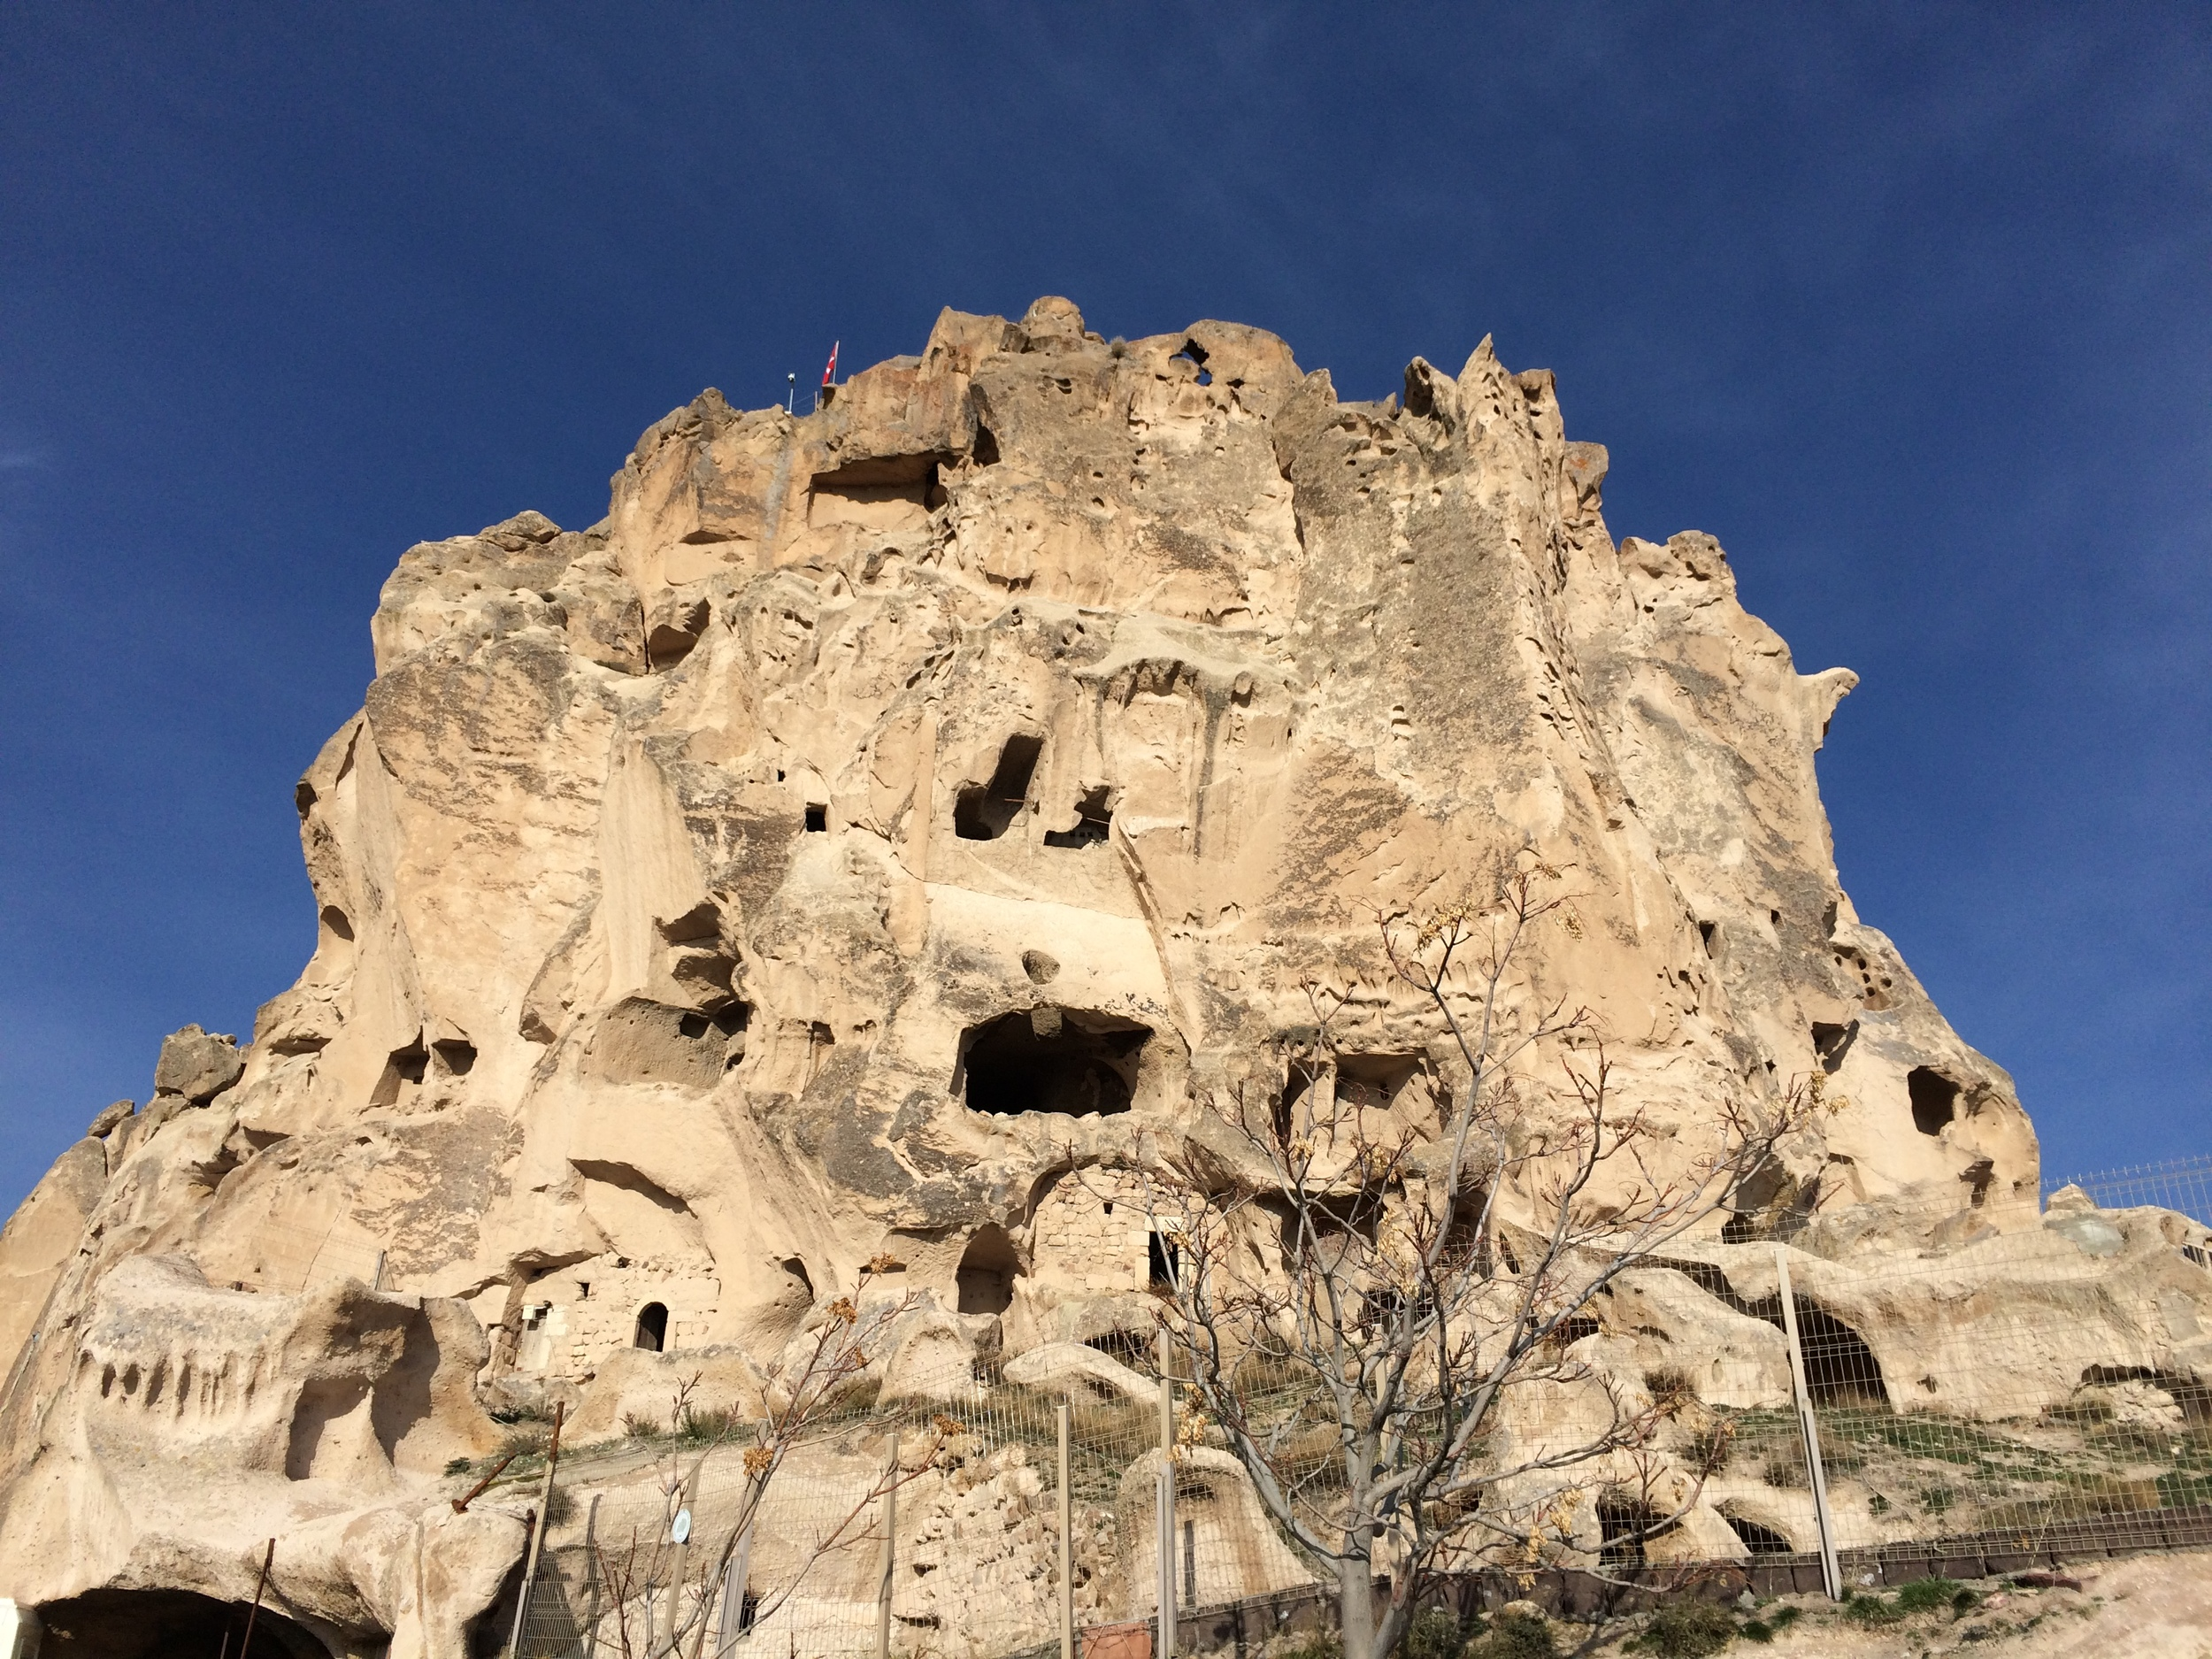 The main rock in Uchisar where the oldest caves are located.